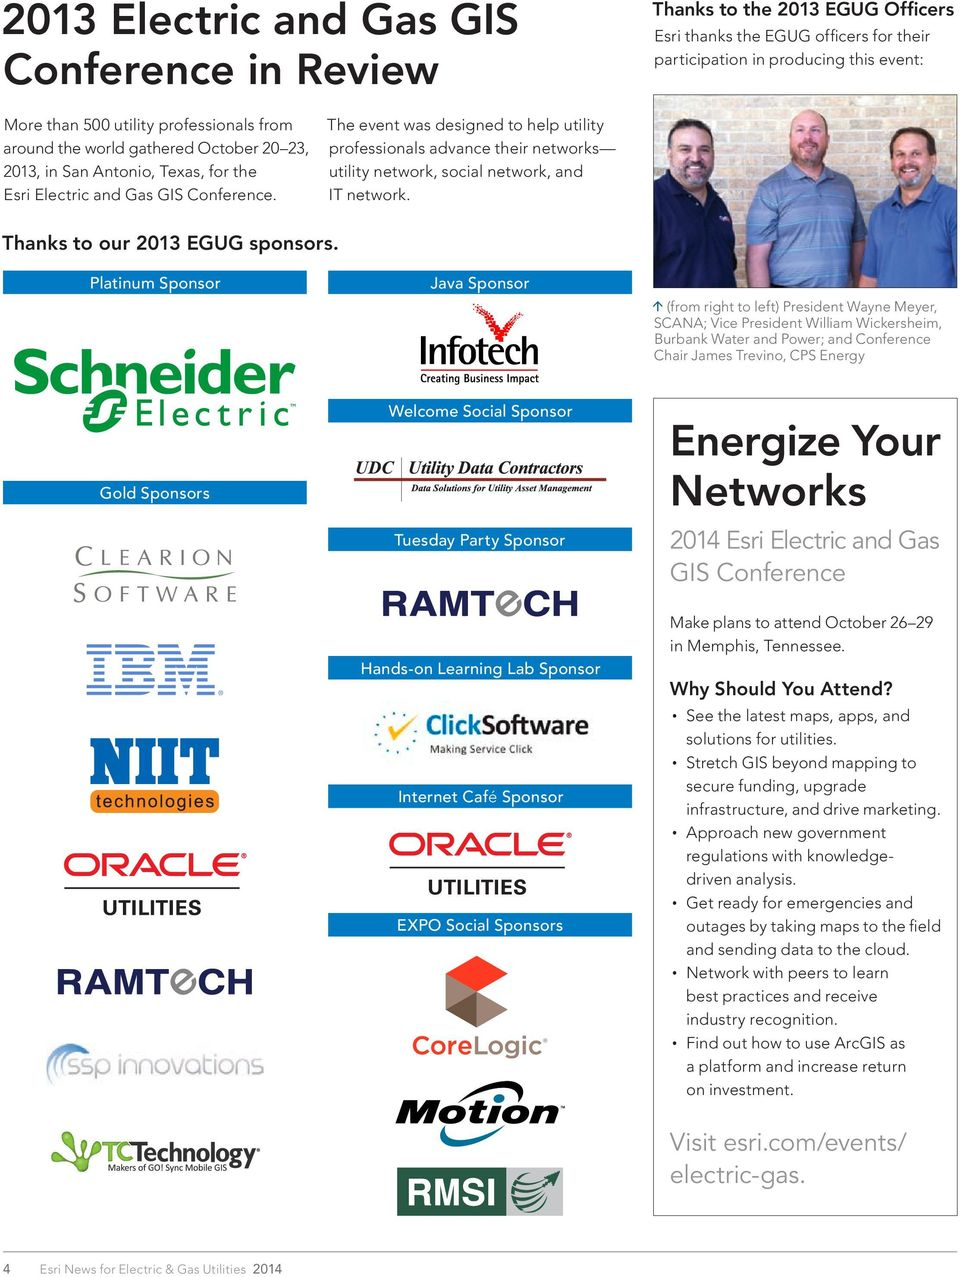 The event was designed to help utility professionals advance their networks utility network, social network, and IT network. Thanks to our 2013 EGUG sponsors.